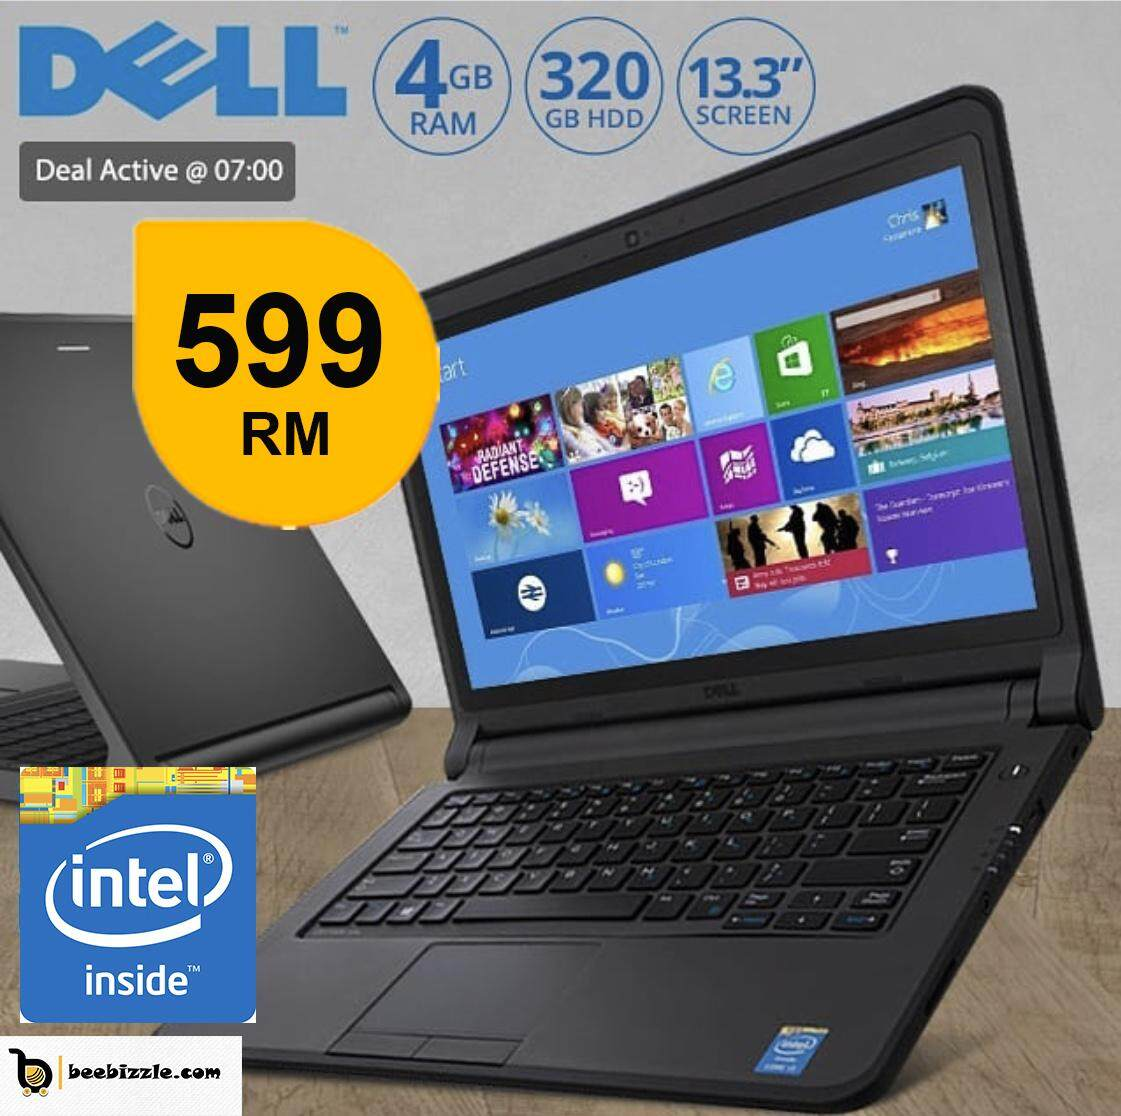 DELL LATITUDE 3150  LAPTOP,4GB RAM, 320 GB HDD,WEBCAM,WINDOWS 8,13.1 INCH AND MORE Malaysia